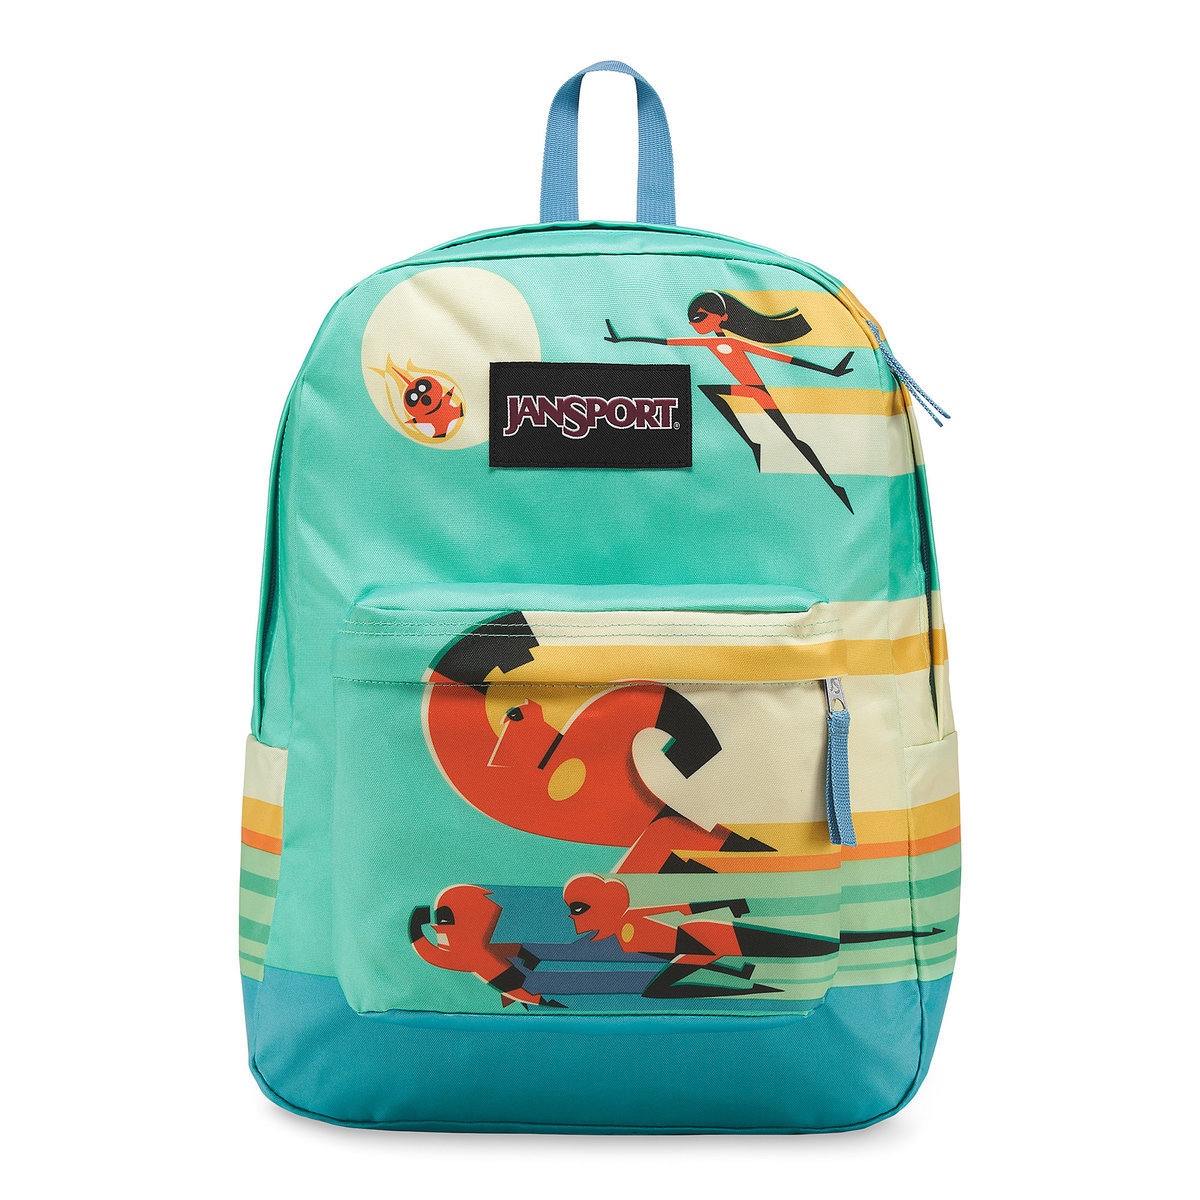 2cd6677ebf6 Product Image of Incredibles 2 High Stakes Backpack by JanSport   1